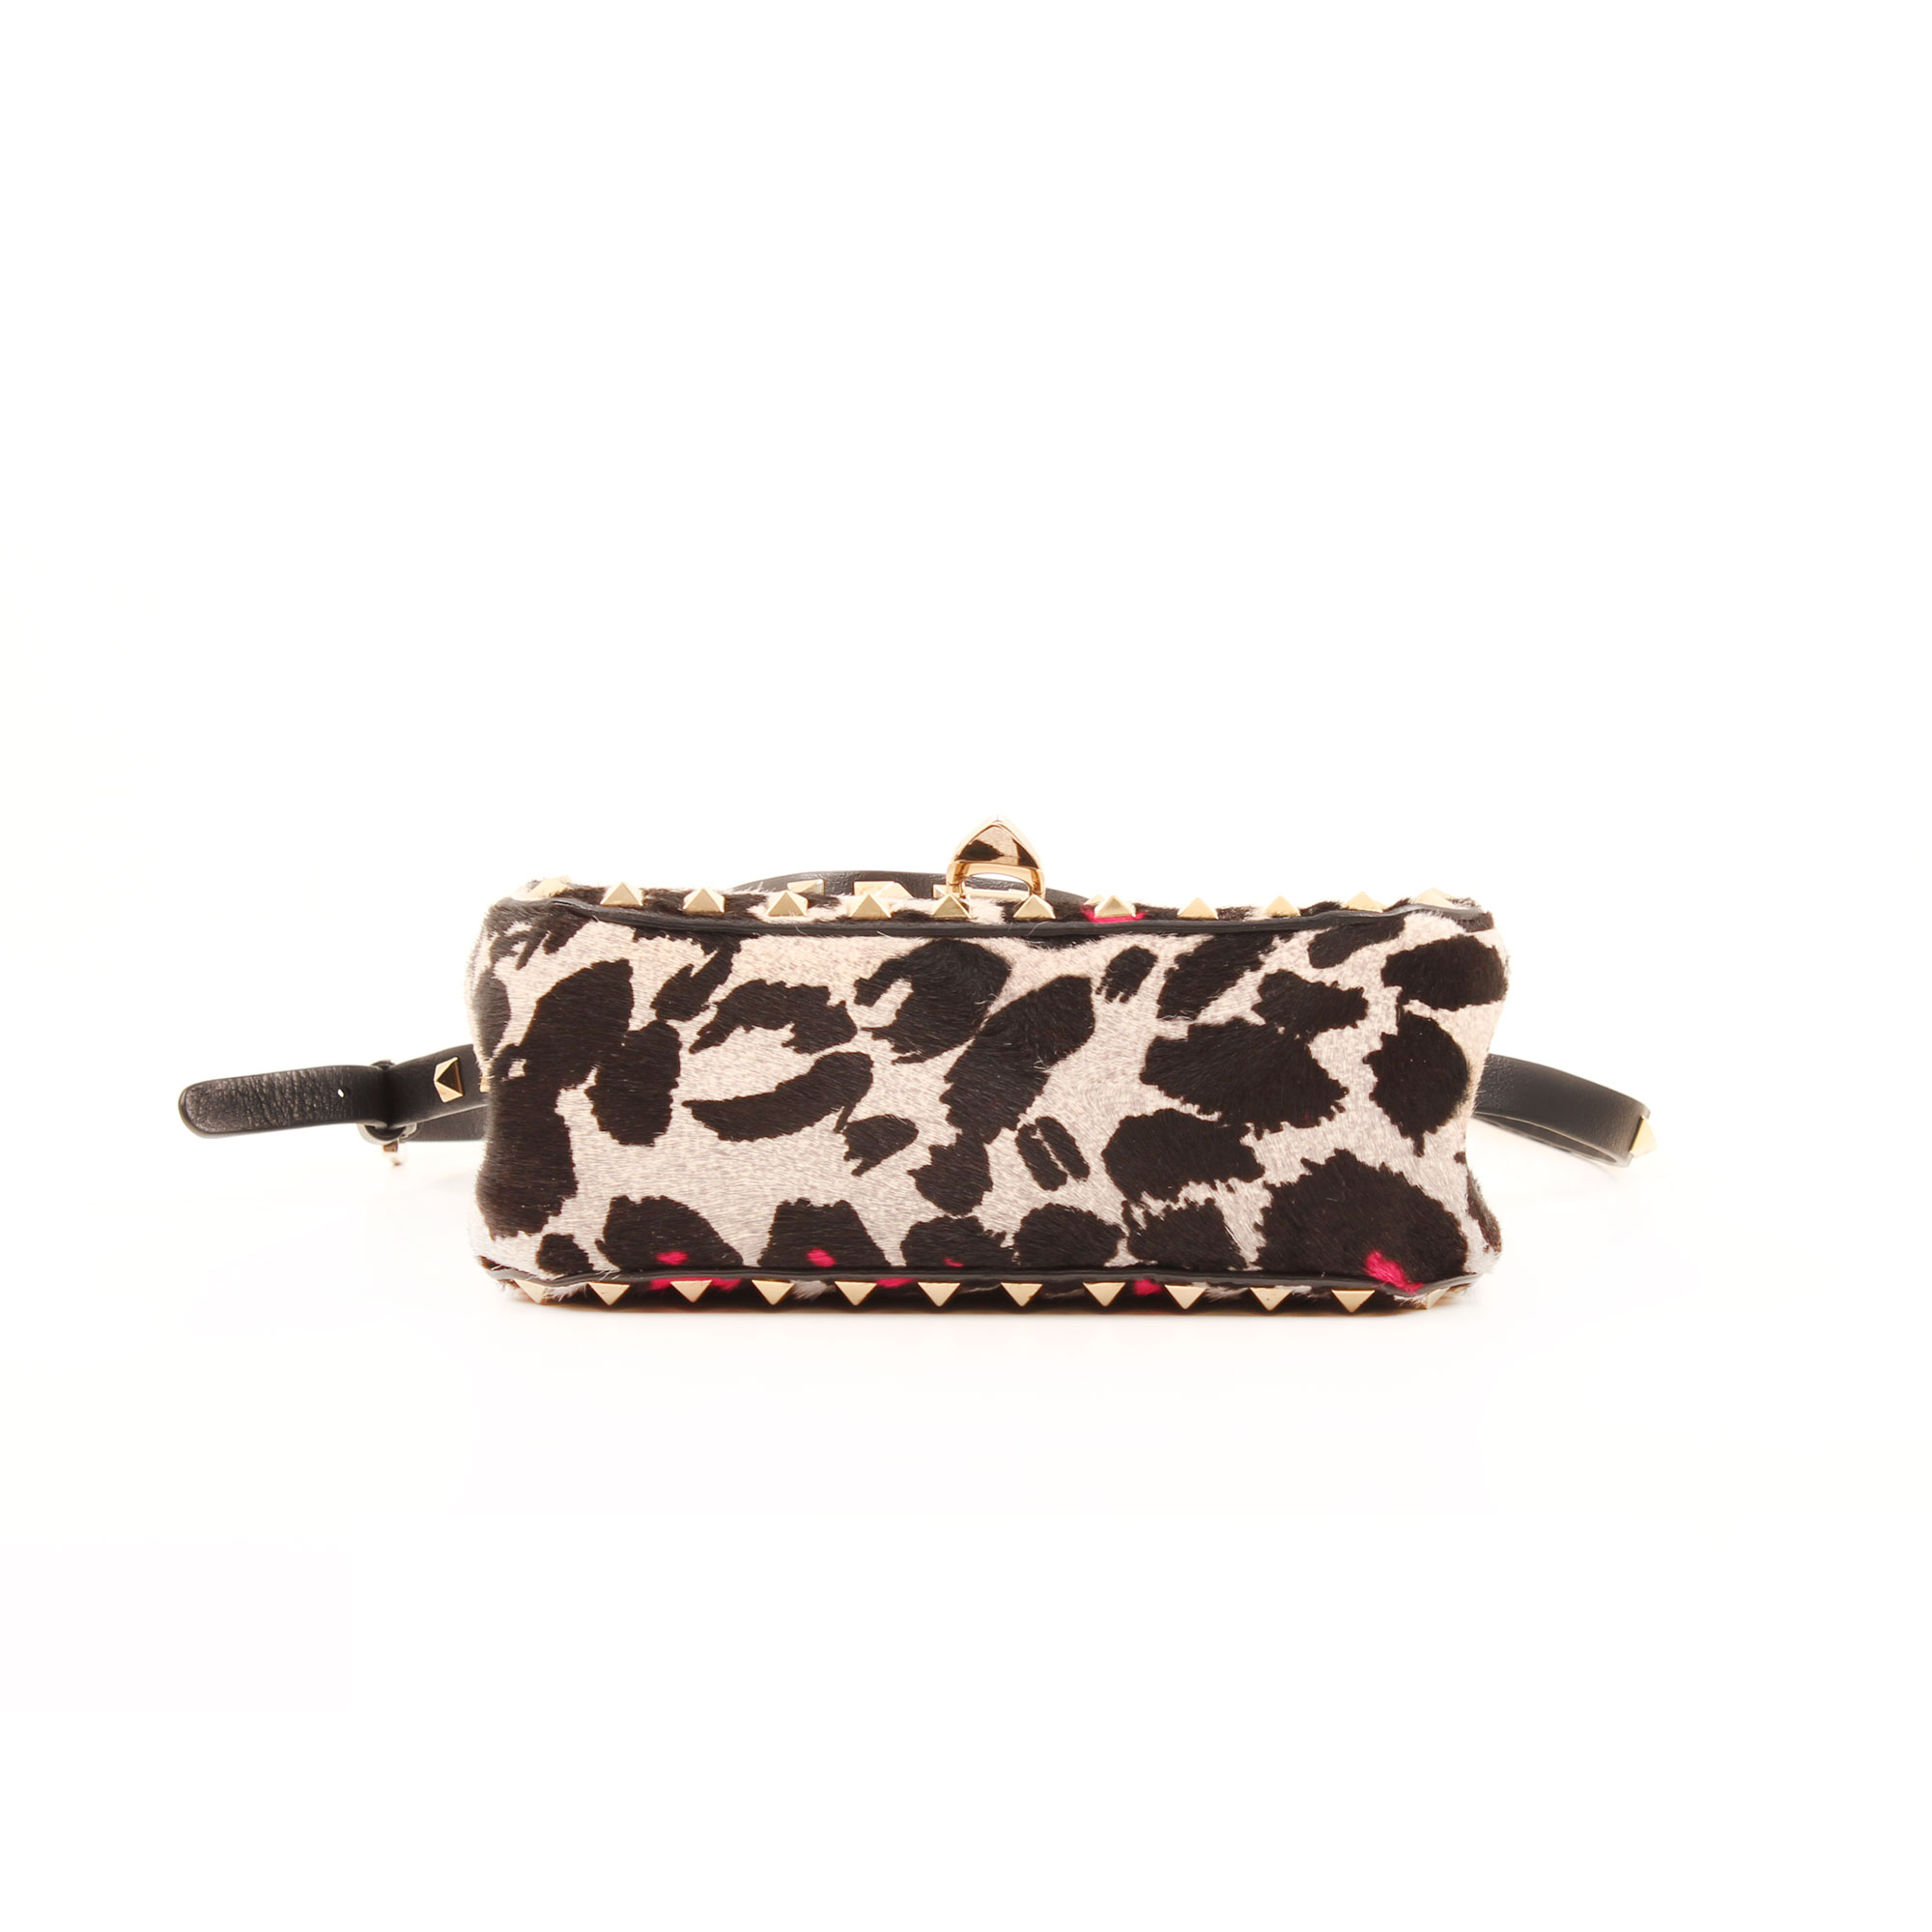 Base image of valentino rockstud mini cross body bag leopard print pink hair calf